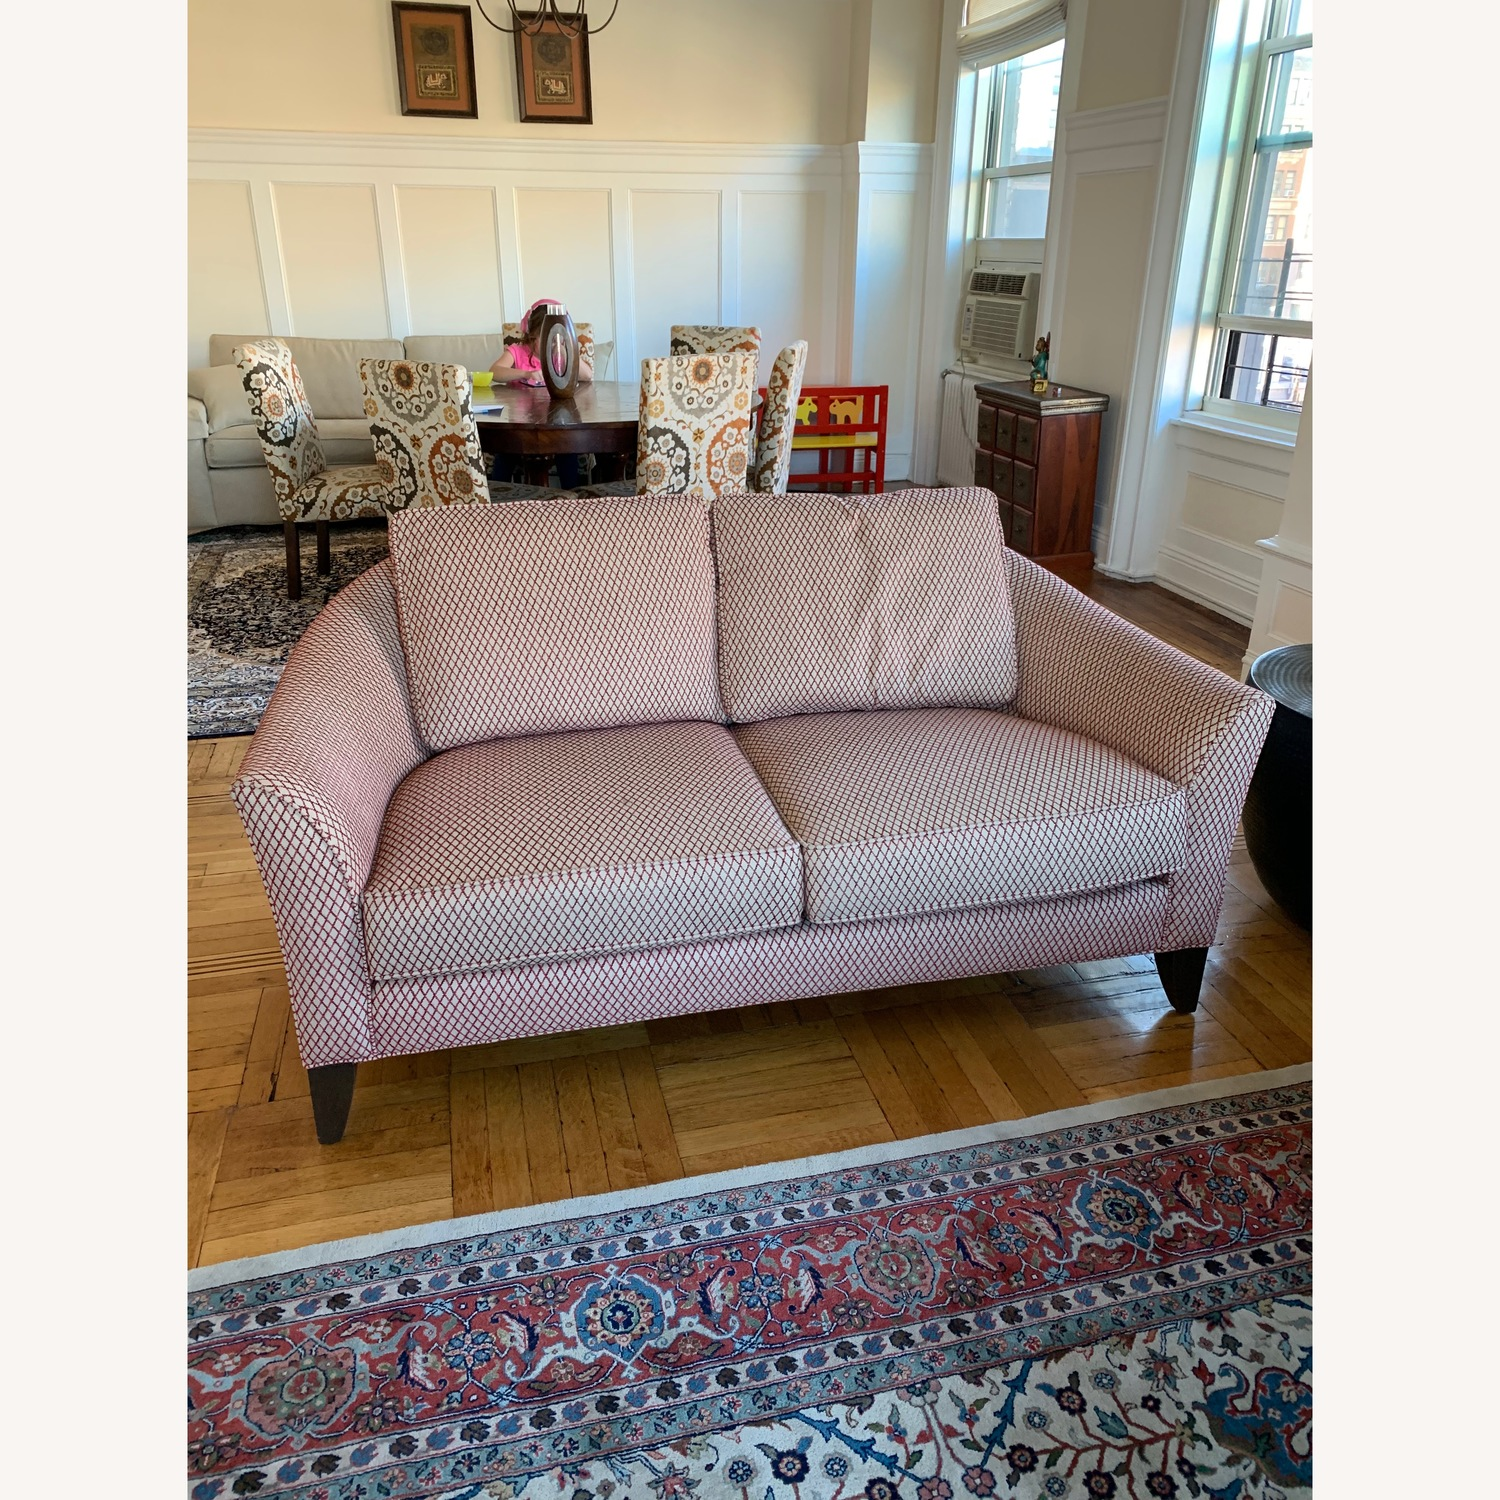 Ethan Allen Red Patterned Loveseat